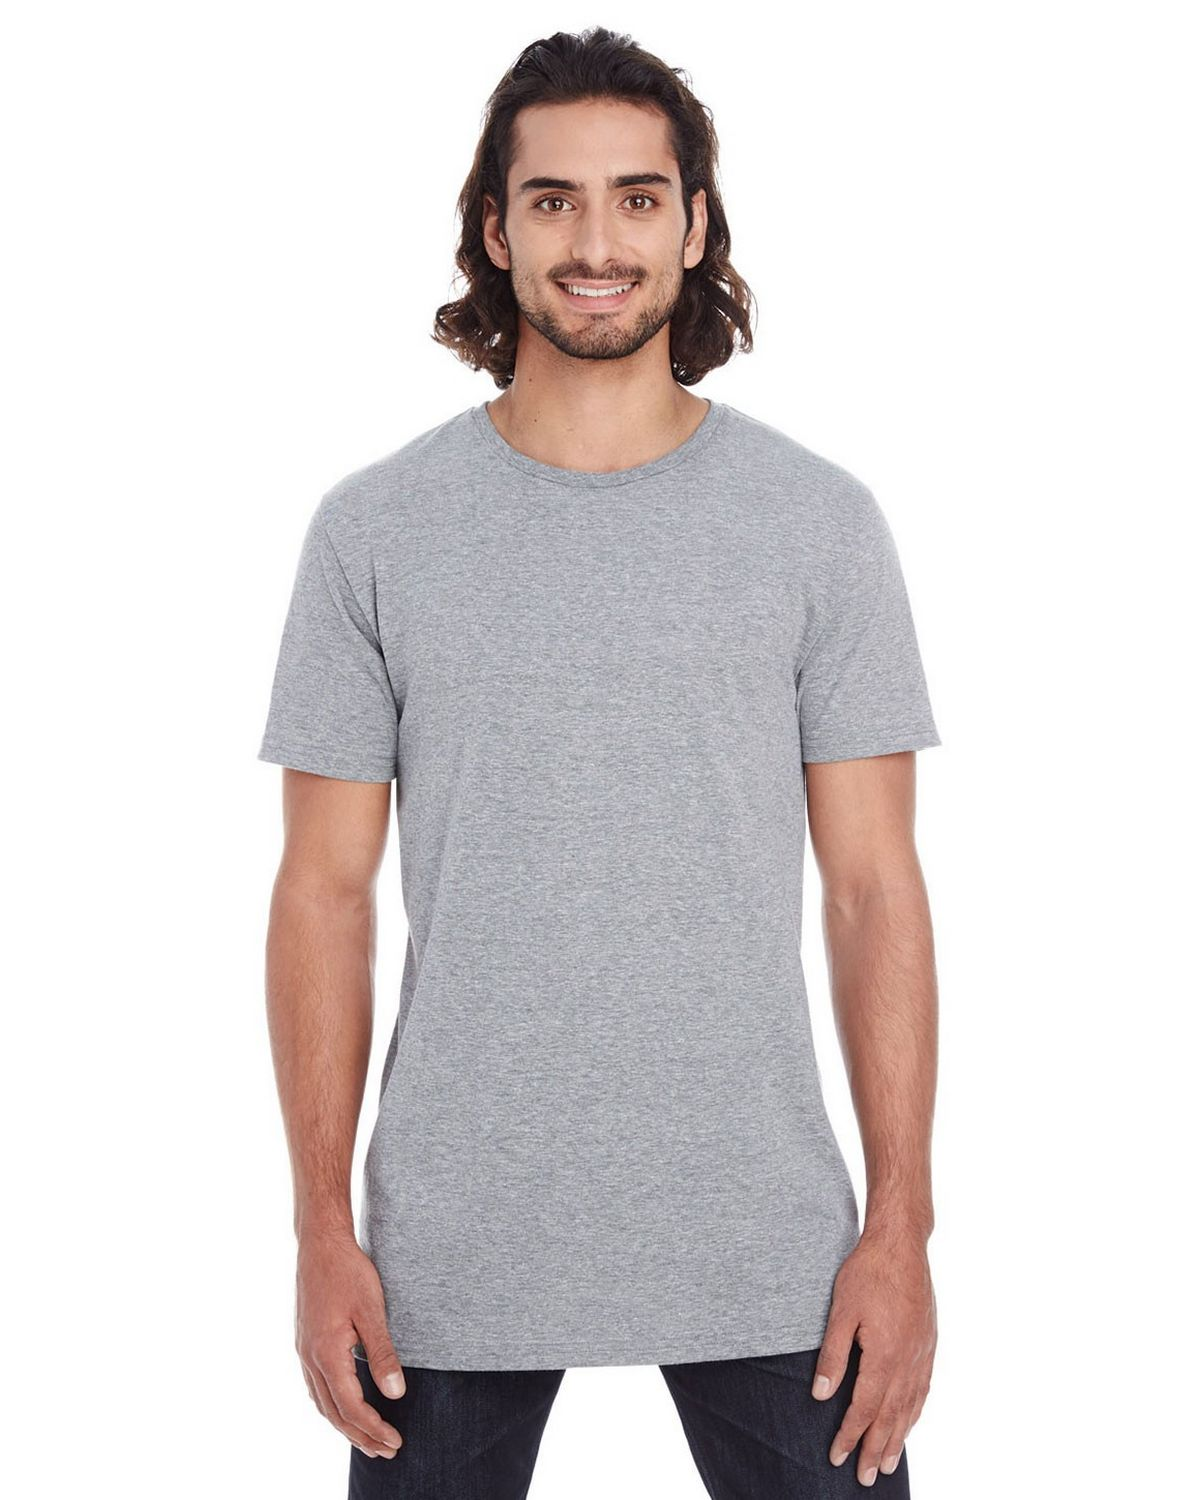 Anvil 5624 Lightweight Long & Lean Tee - Heather Graphite - M 5624